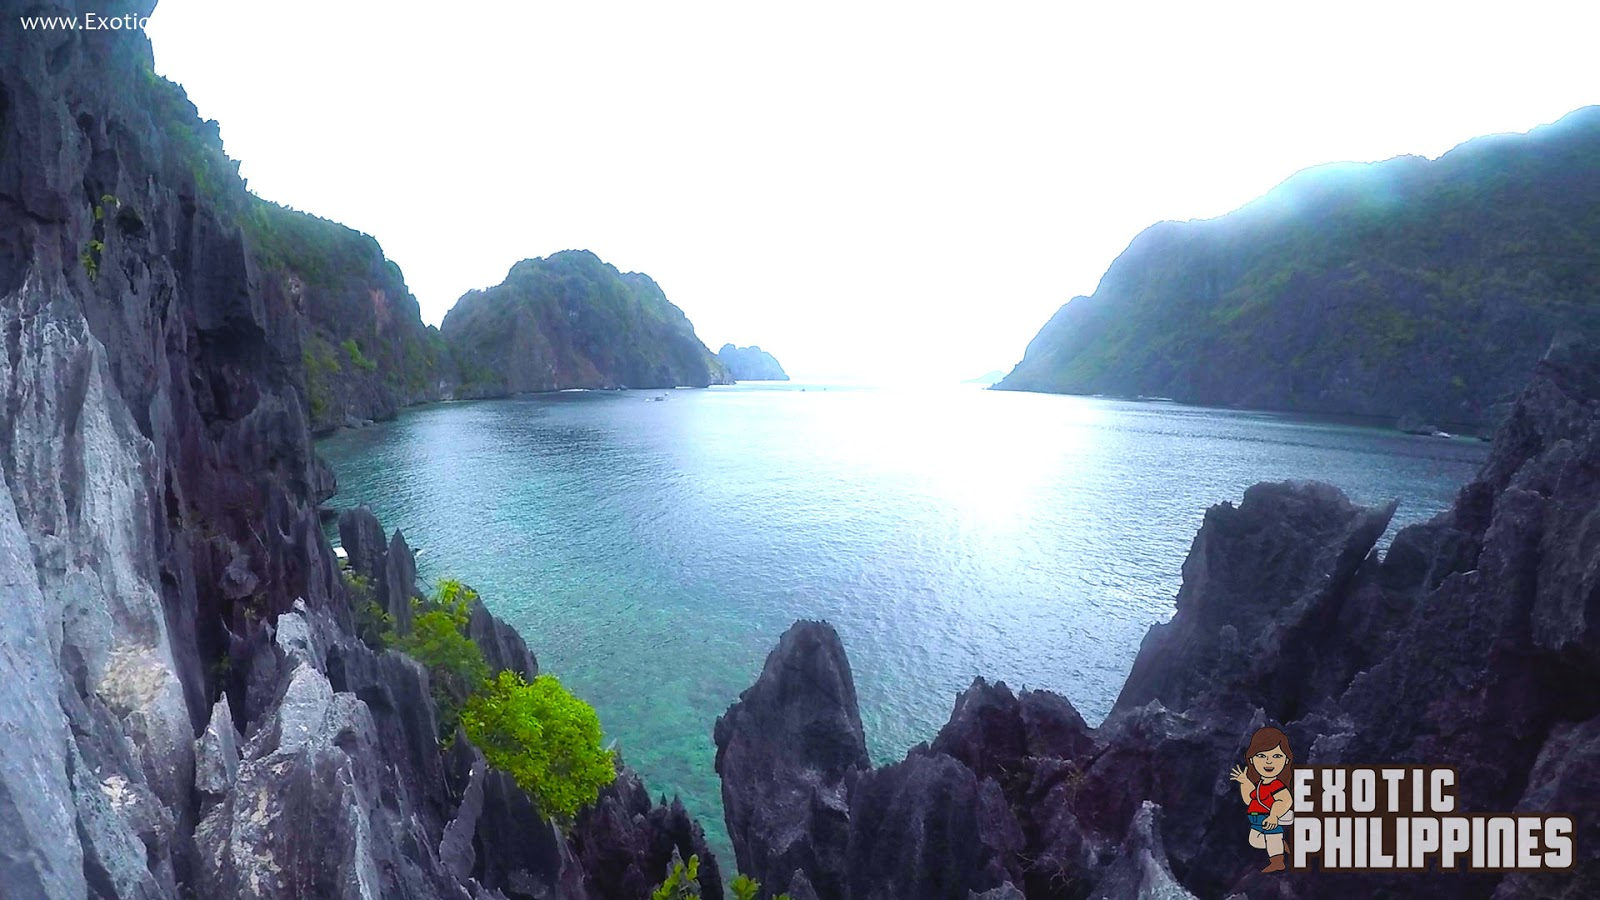 On the Matinloc Shrine of El Nido Palawan Exotic Philippines Travel Blog Blogger